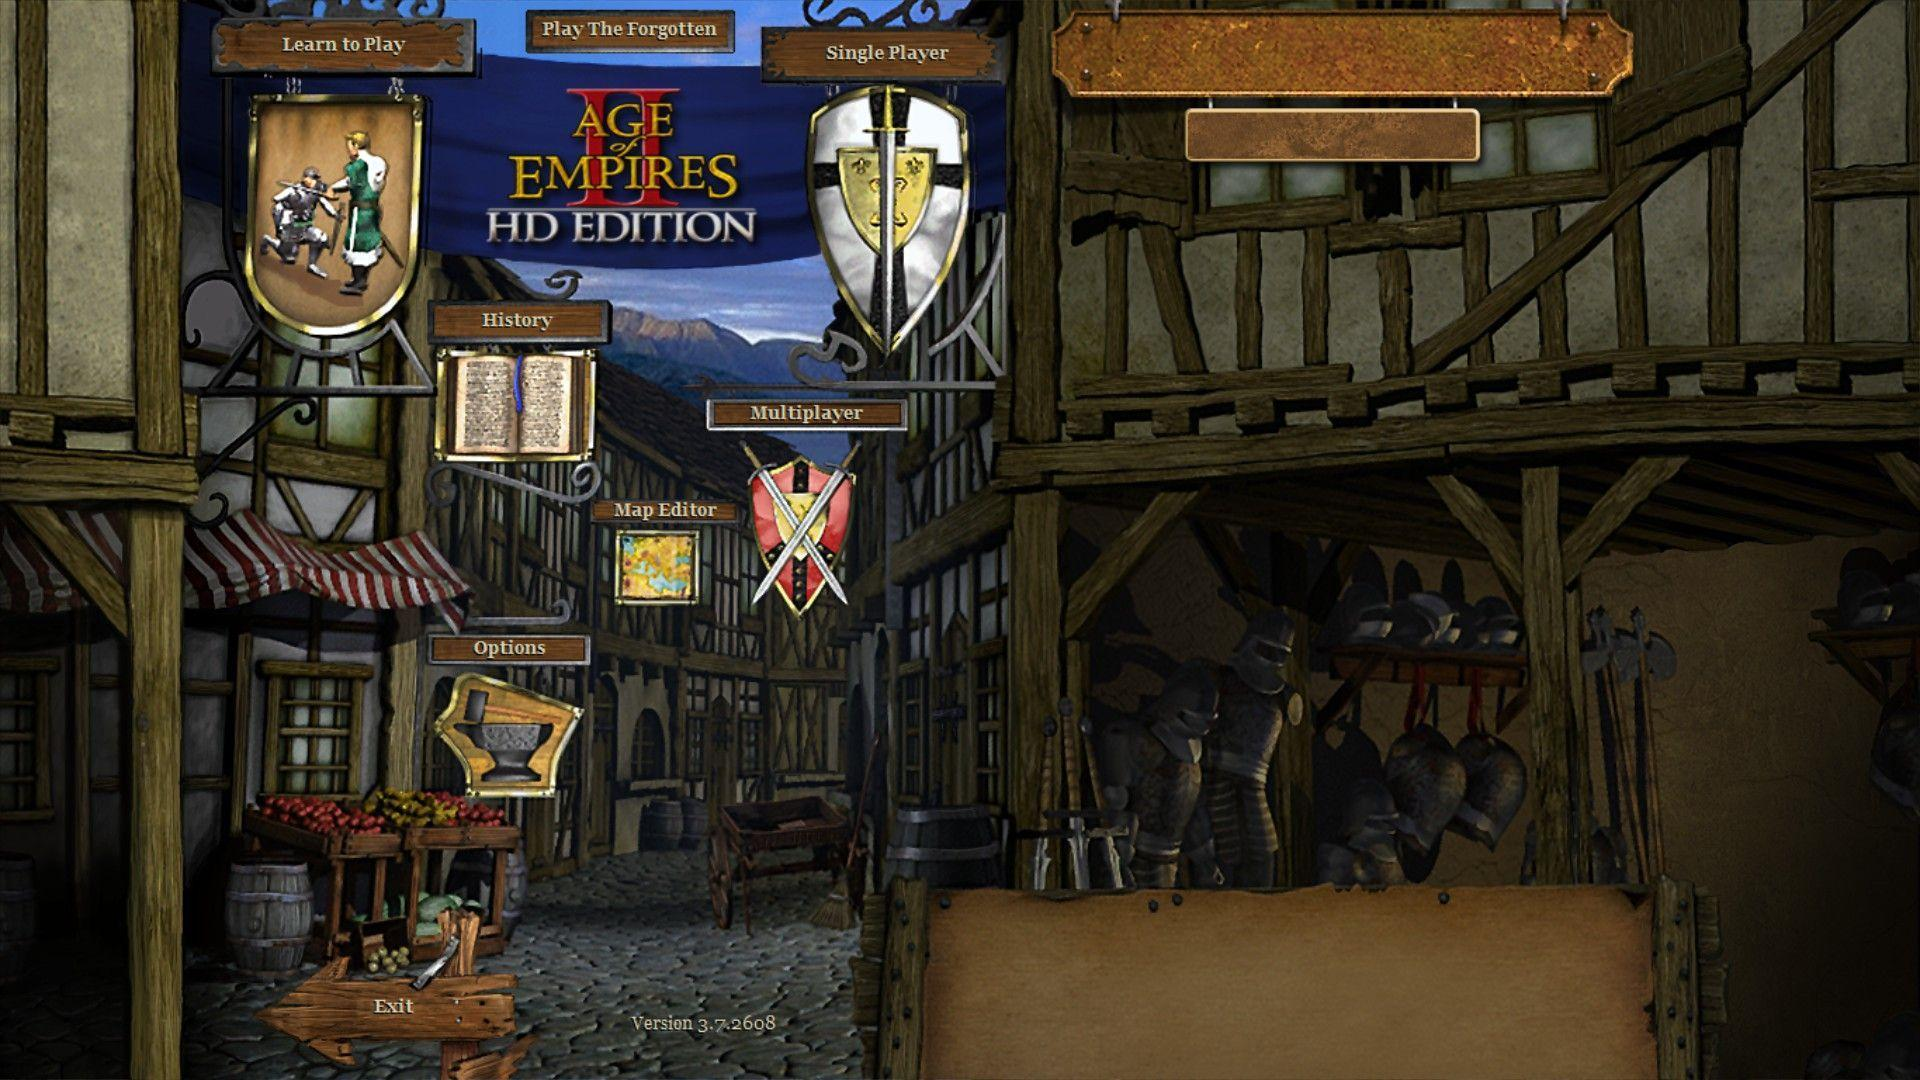 Age of Empires II HD Main Menu picture - ID: 4728